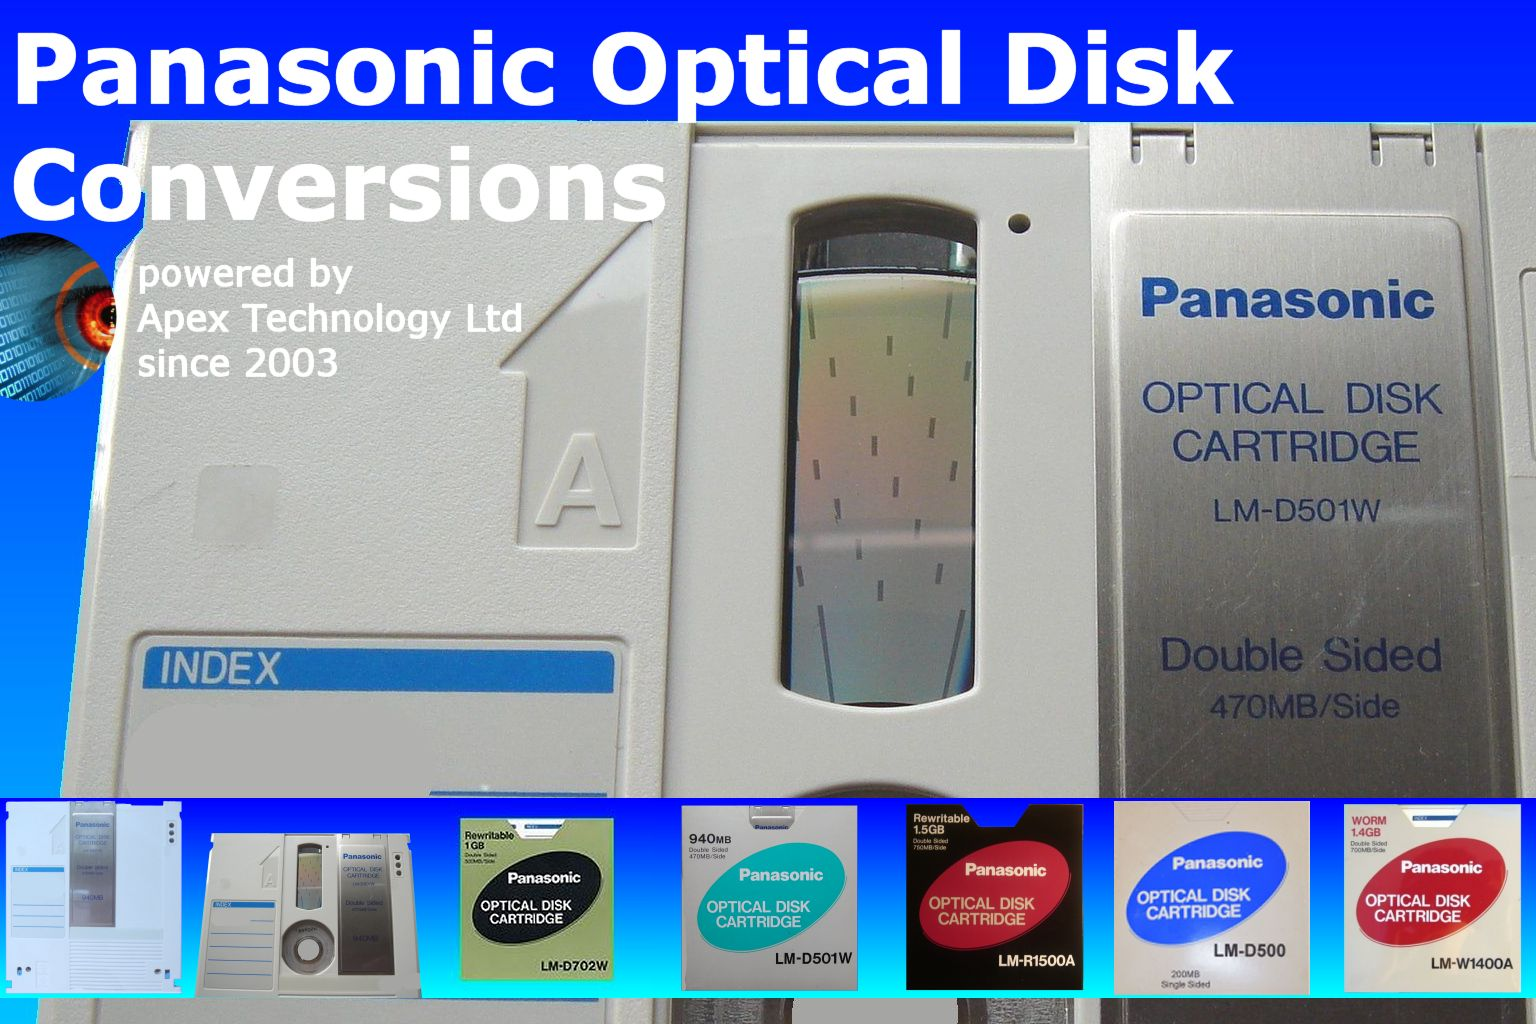 Panasonic LM Optical Disk Cartridge Conversion and File Transfer